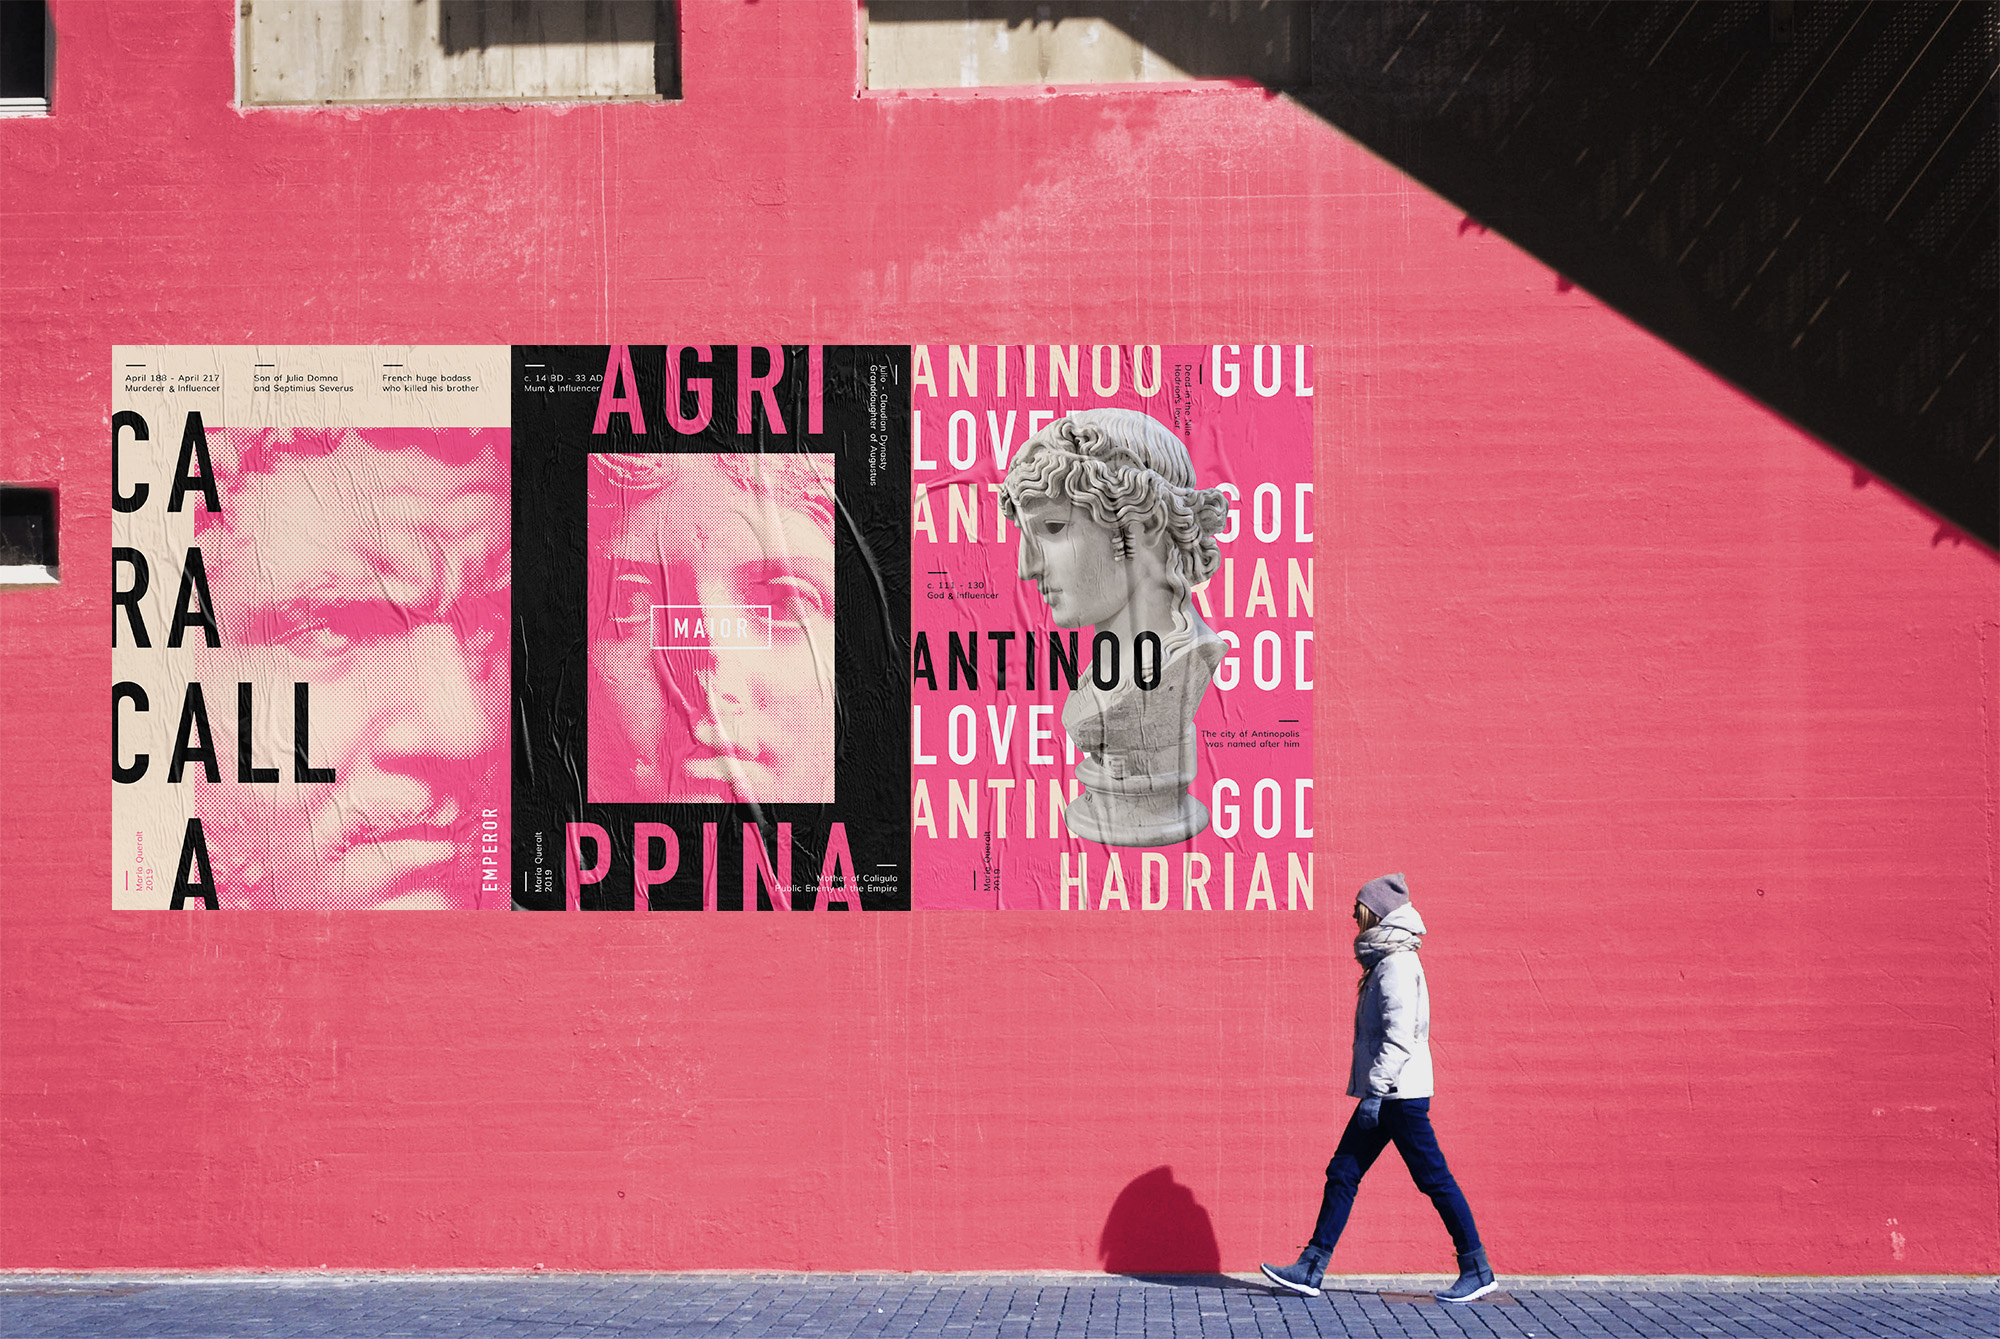 Photography of Street Wall Posters on pink street with pedestrian, part of Ancient Influencers Photography series by Maria Queralt of Roman Emperor Caracalla, Agrippina the Elder and Antinous. Photography, design and art direction by Maria Queralt